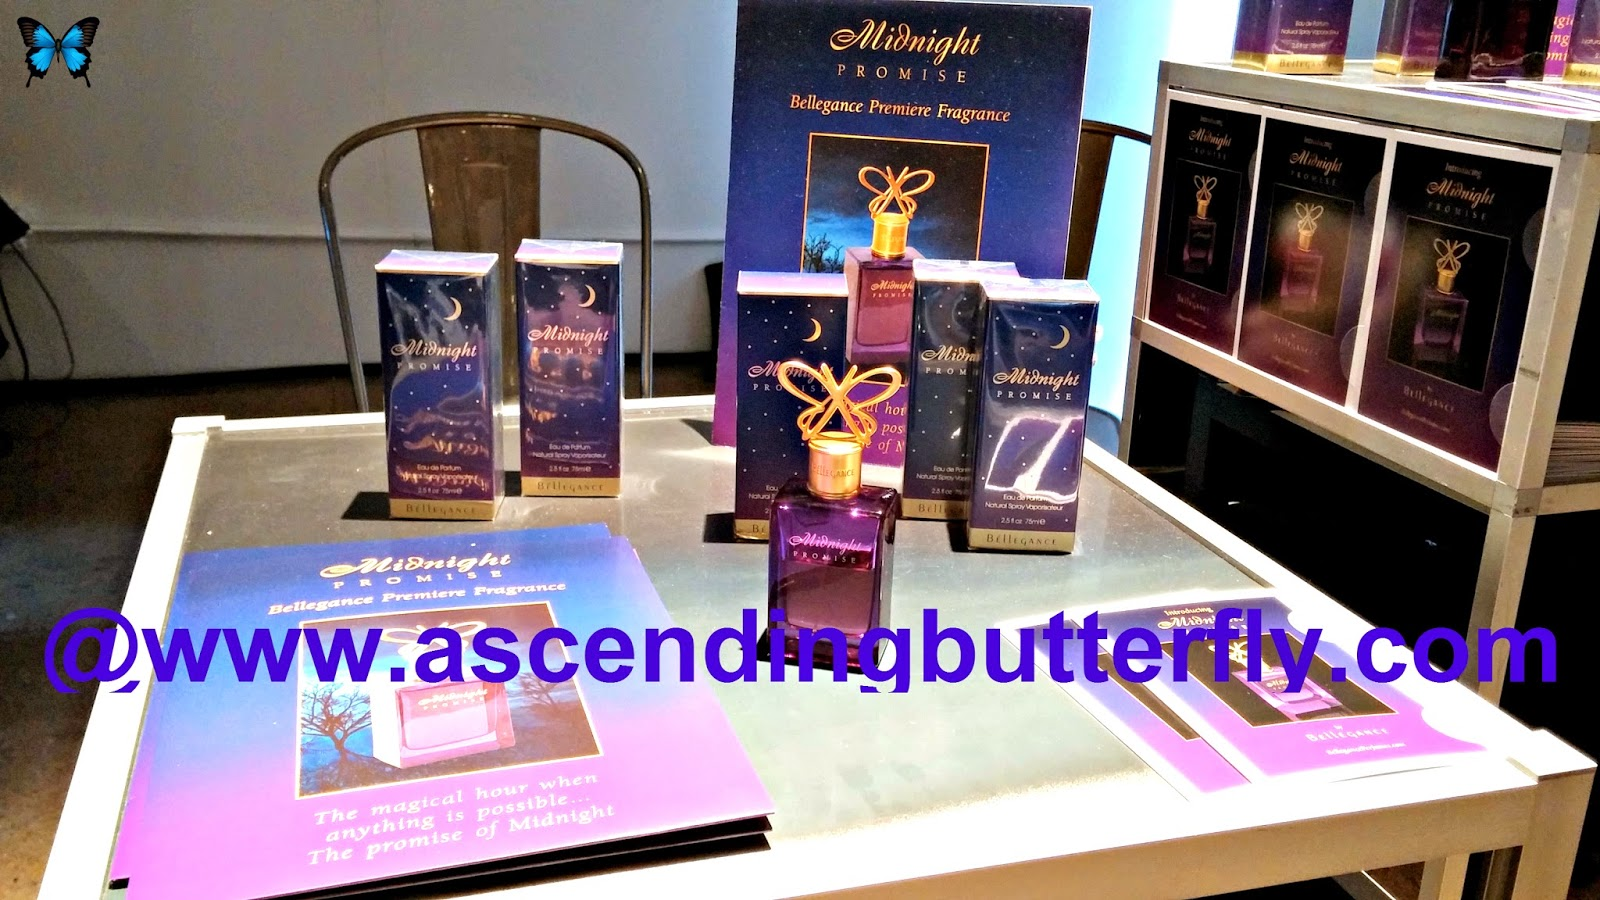 Bellegance Perfumes premiere fragrance Midnight Promise, a beautiful Eau de Parfum, butterfly bottle